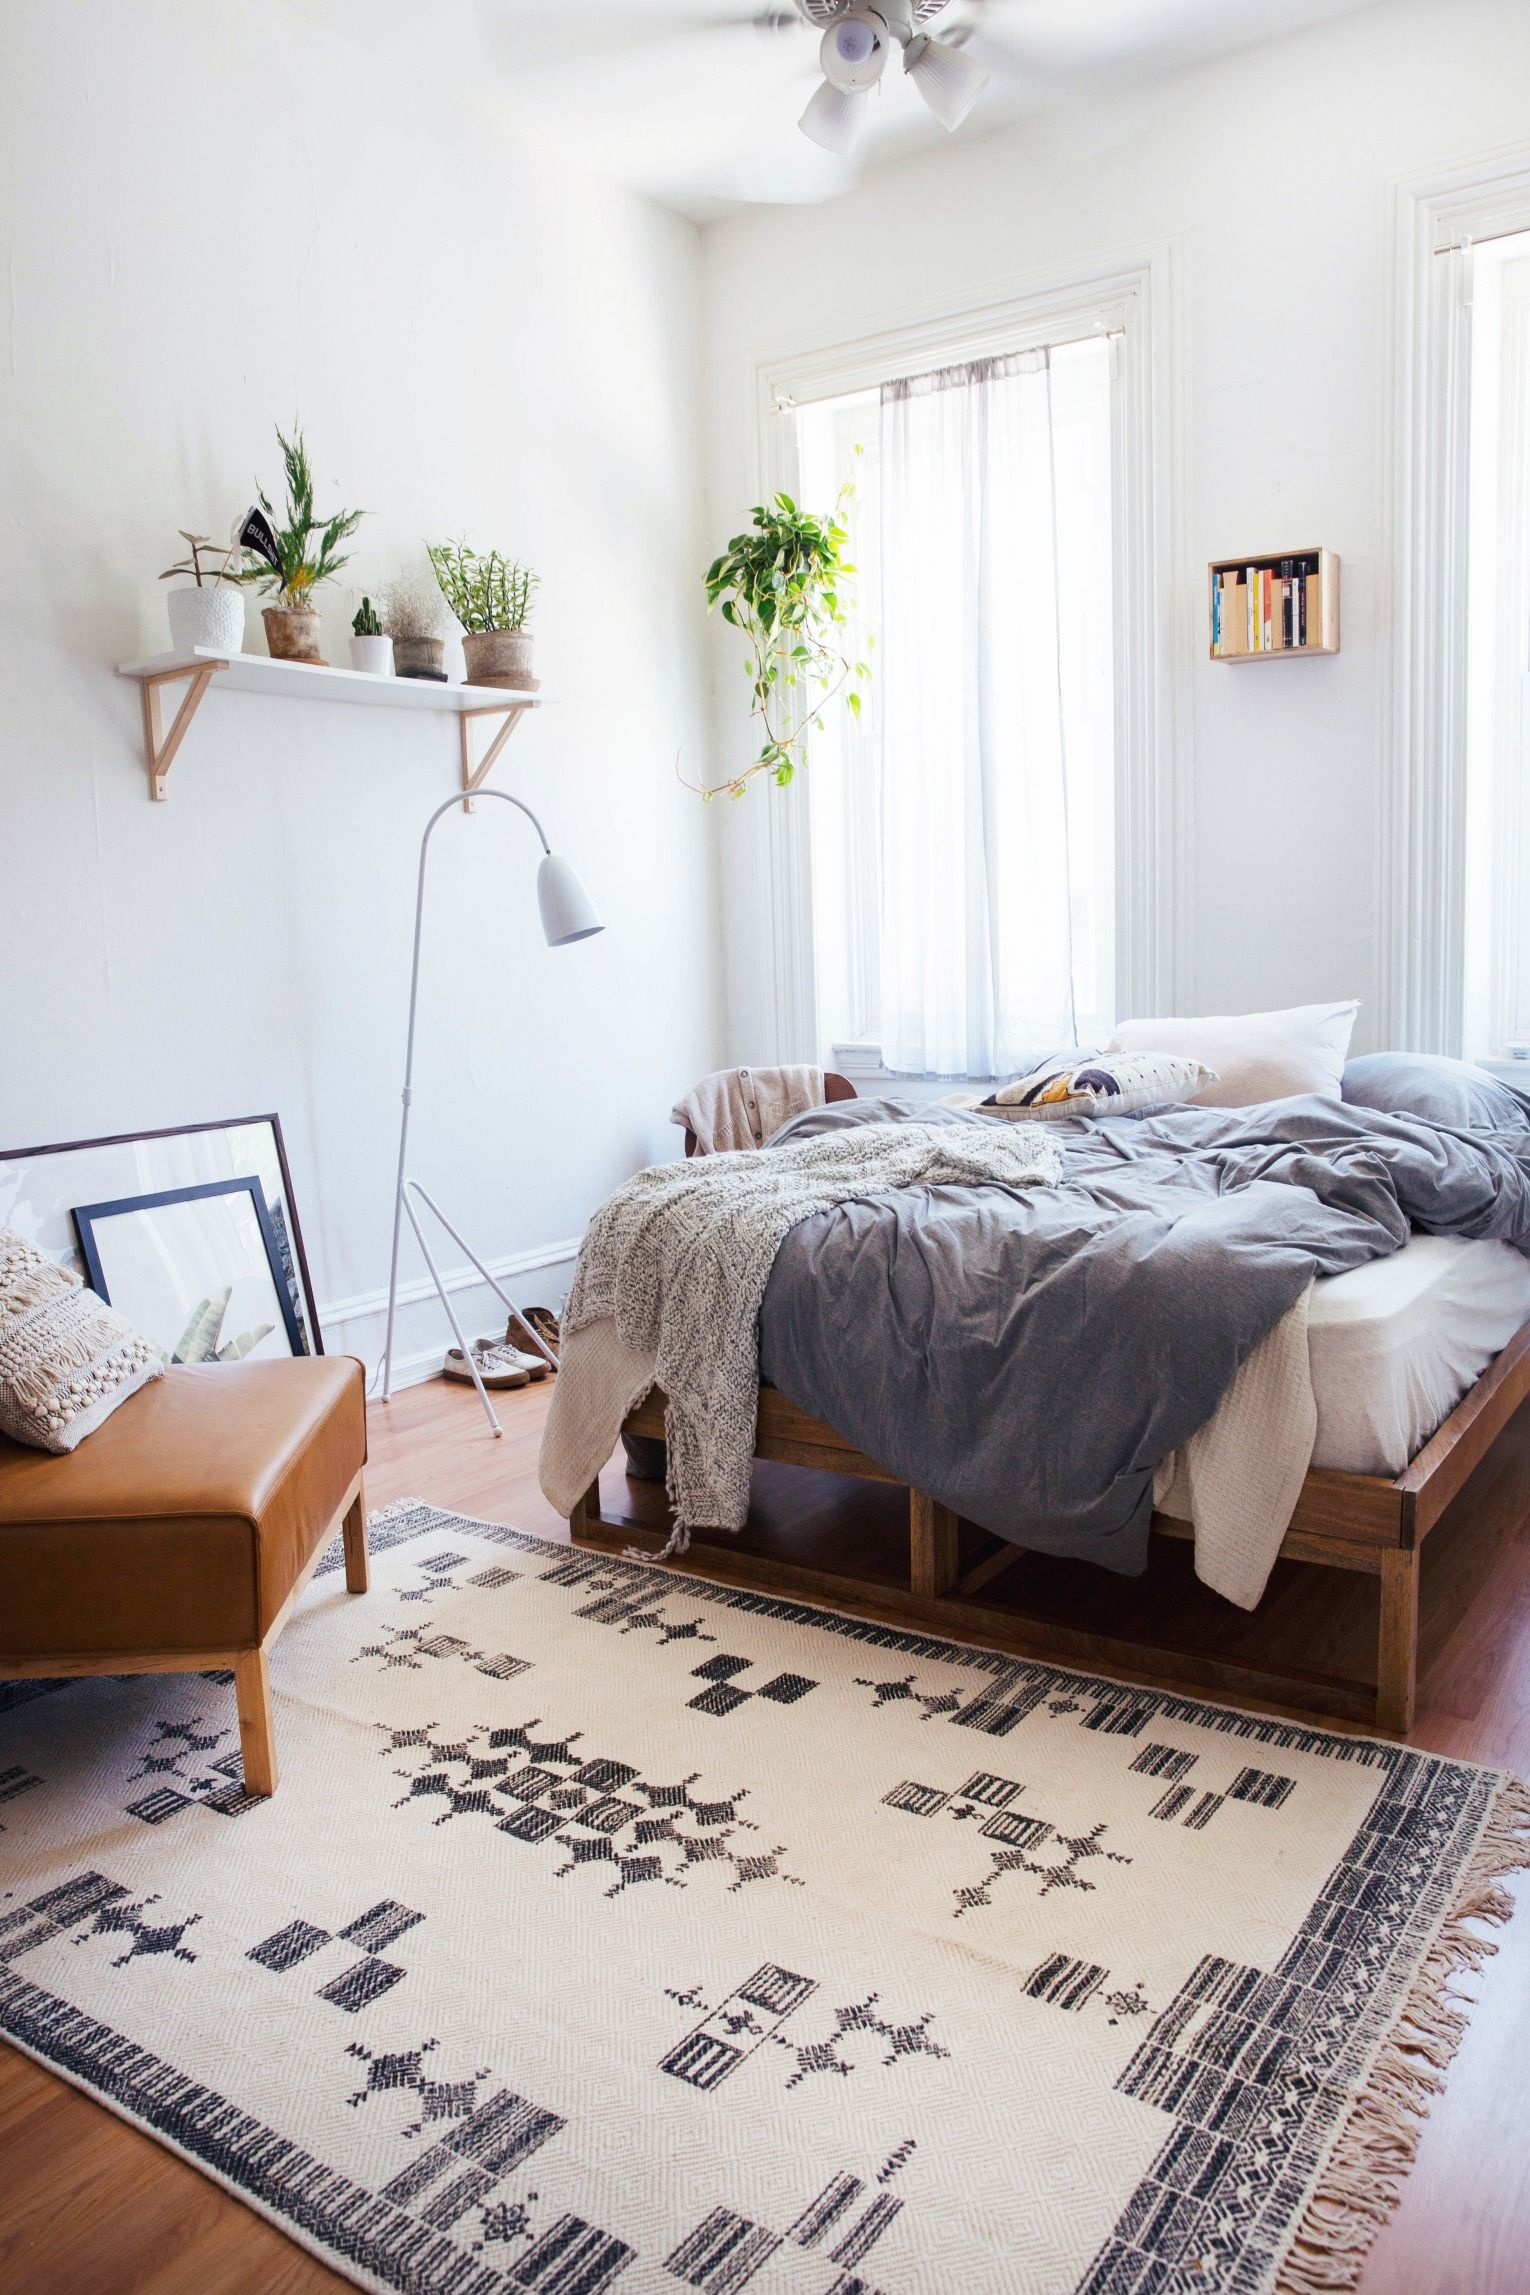 Uo interviews mike hogan bedroom inspo pinterest bedrooms